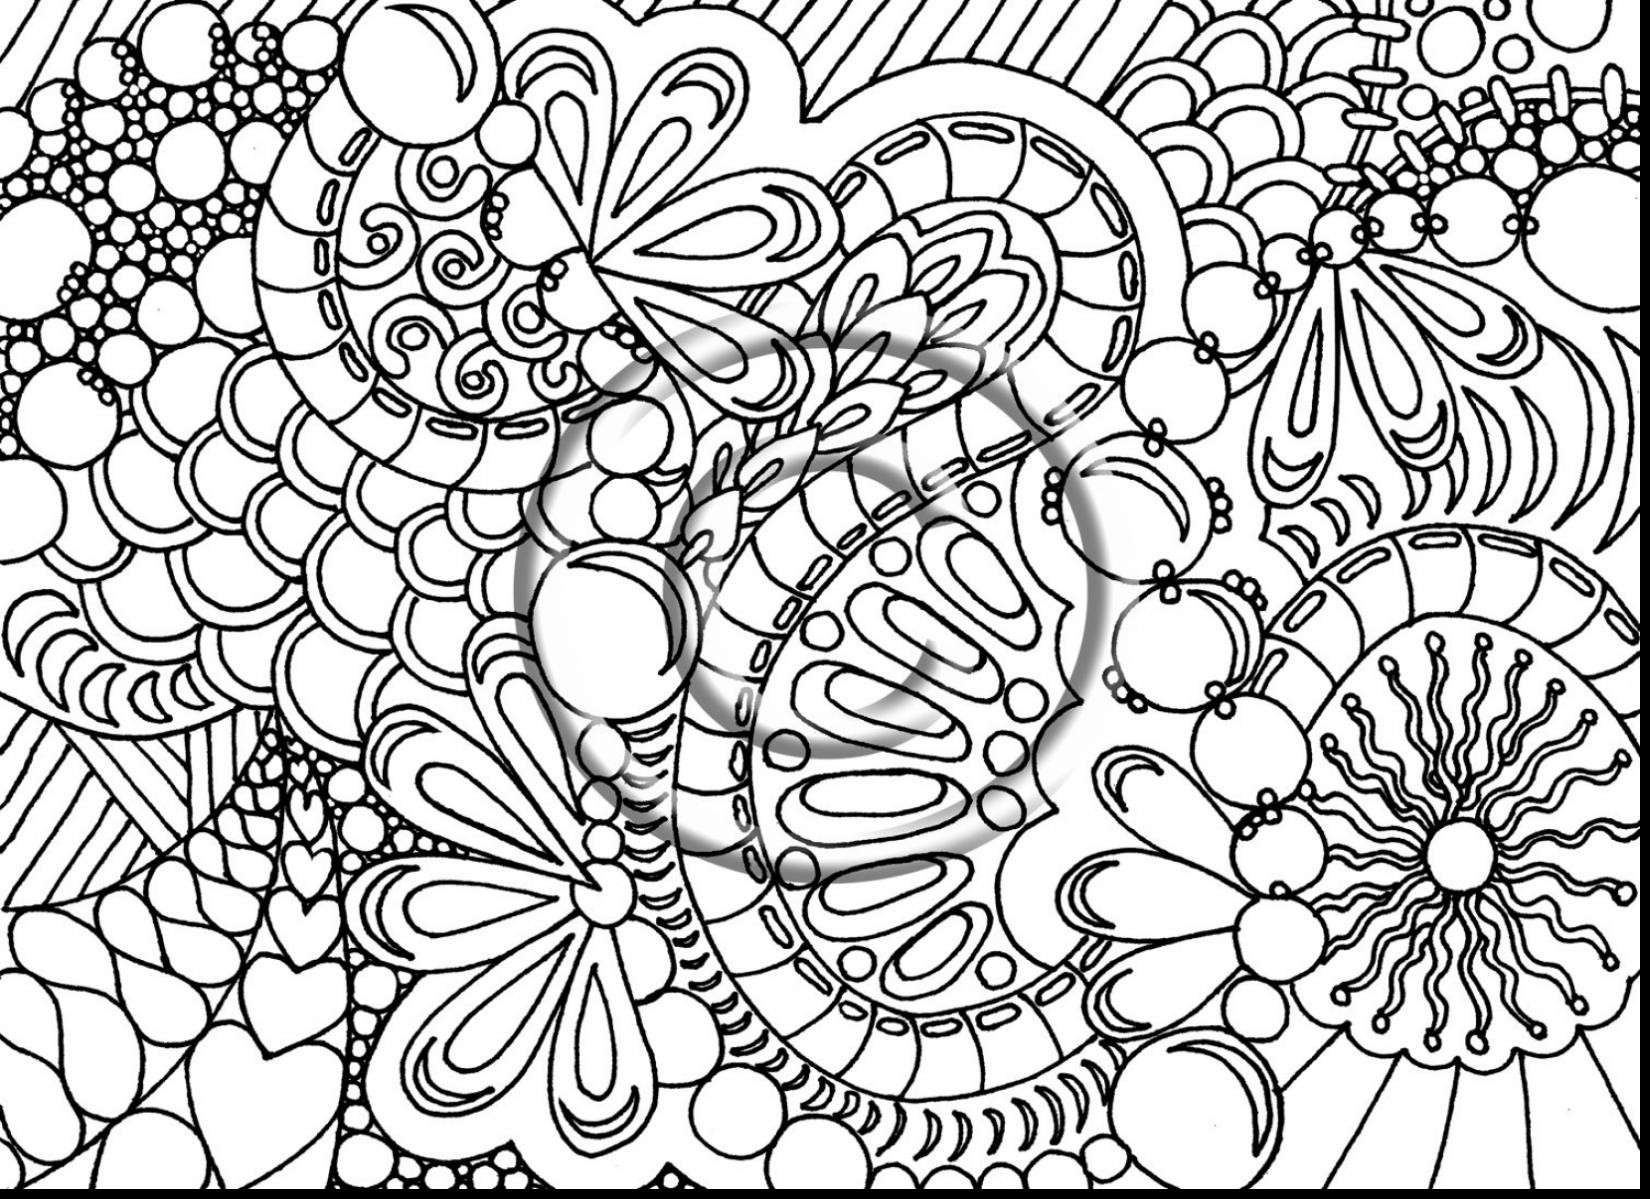 Christmas Coloring Pages Difficult For Adults With To Print Free Printable Hard